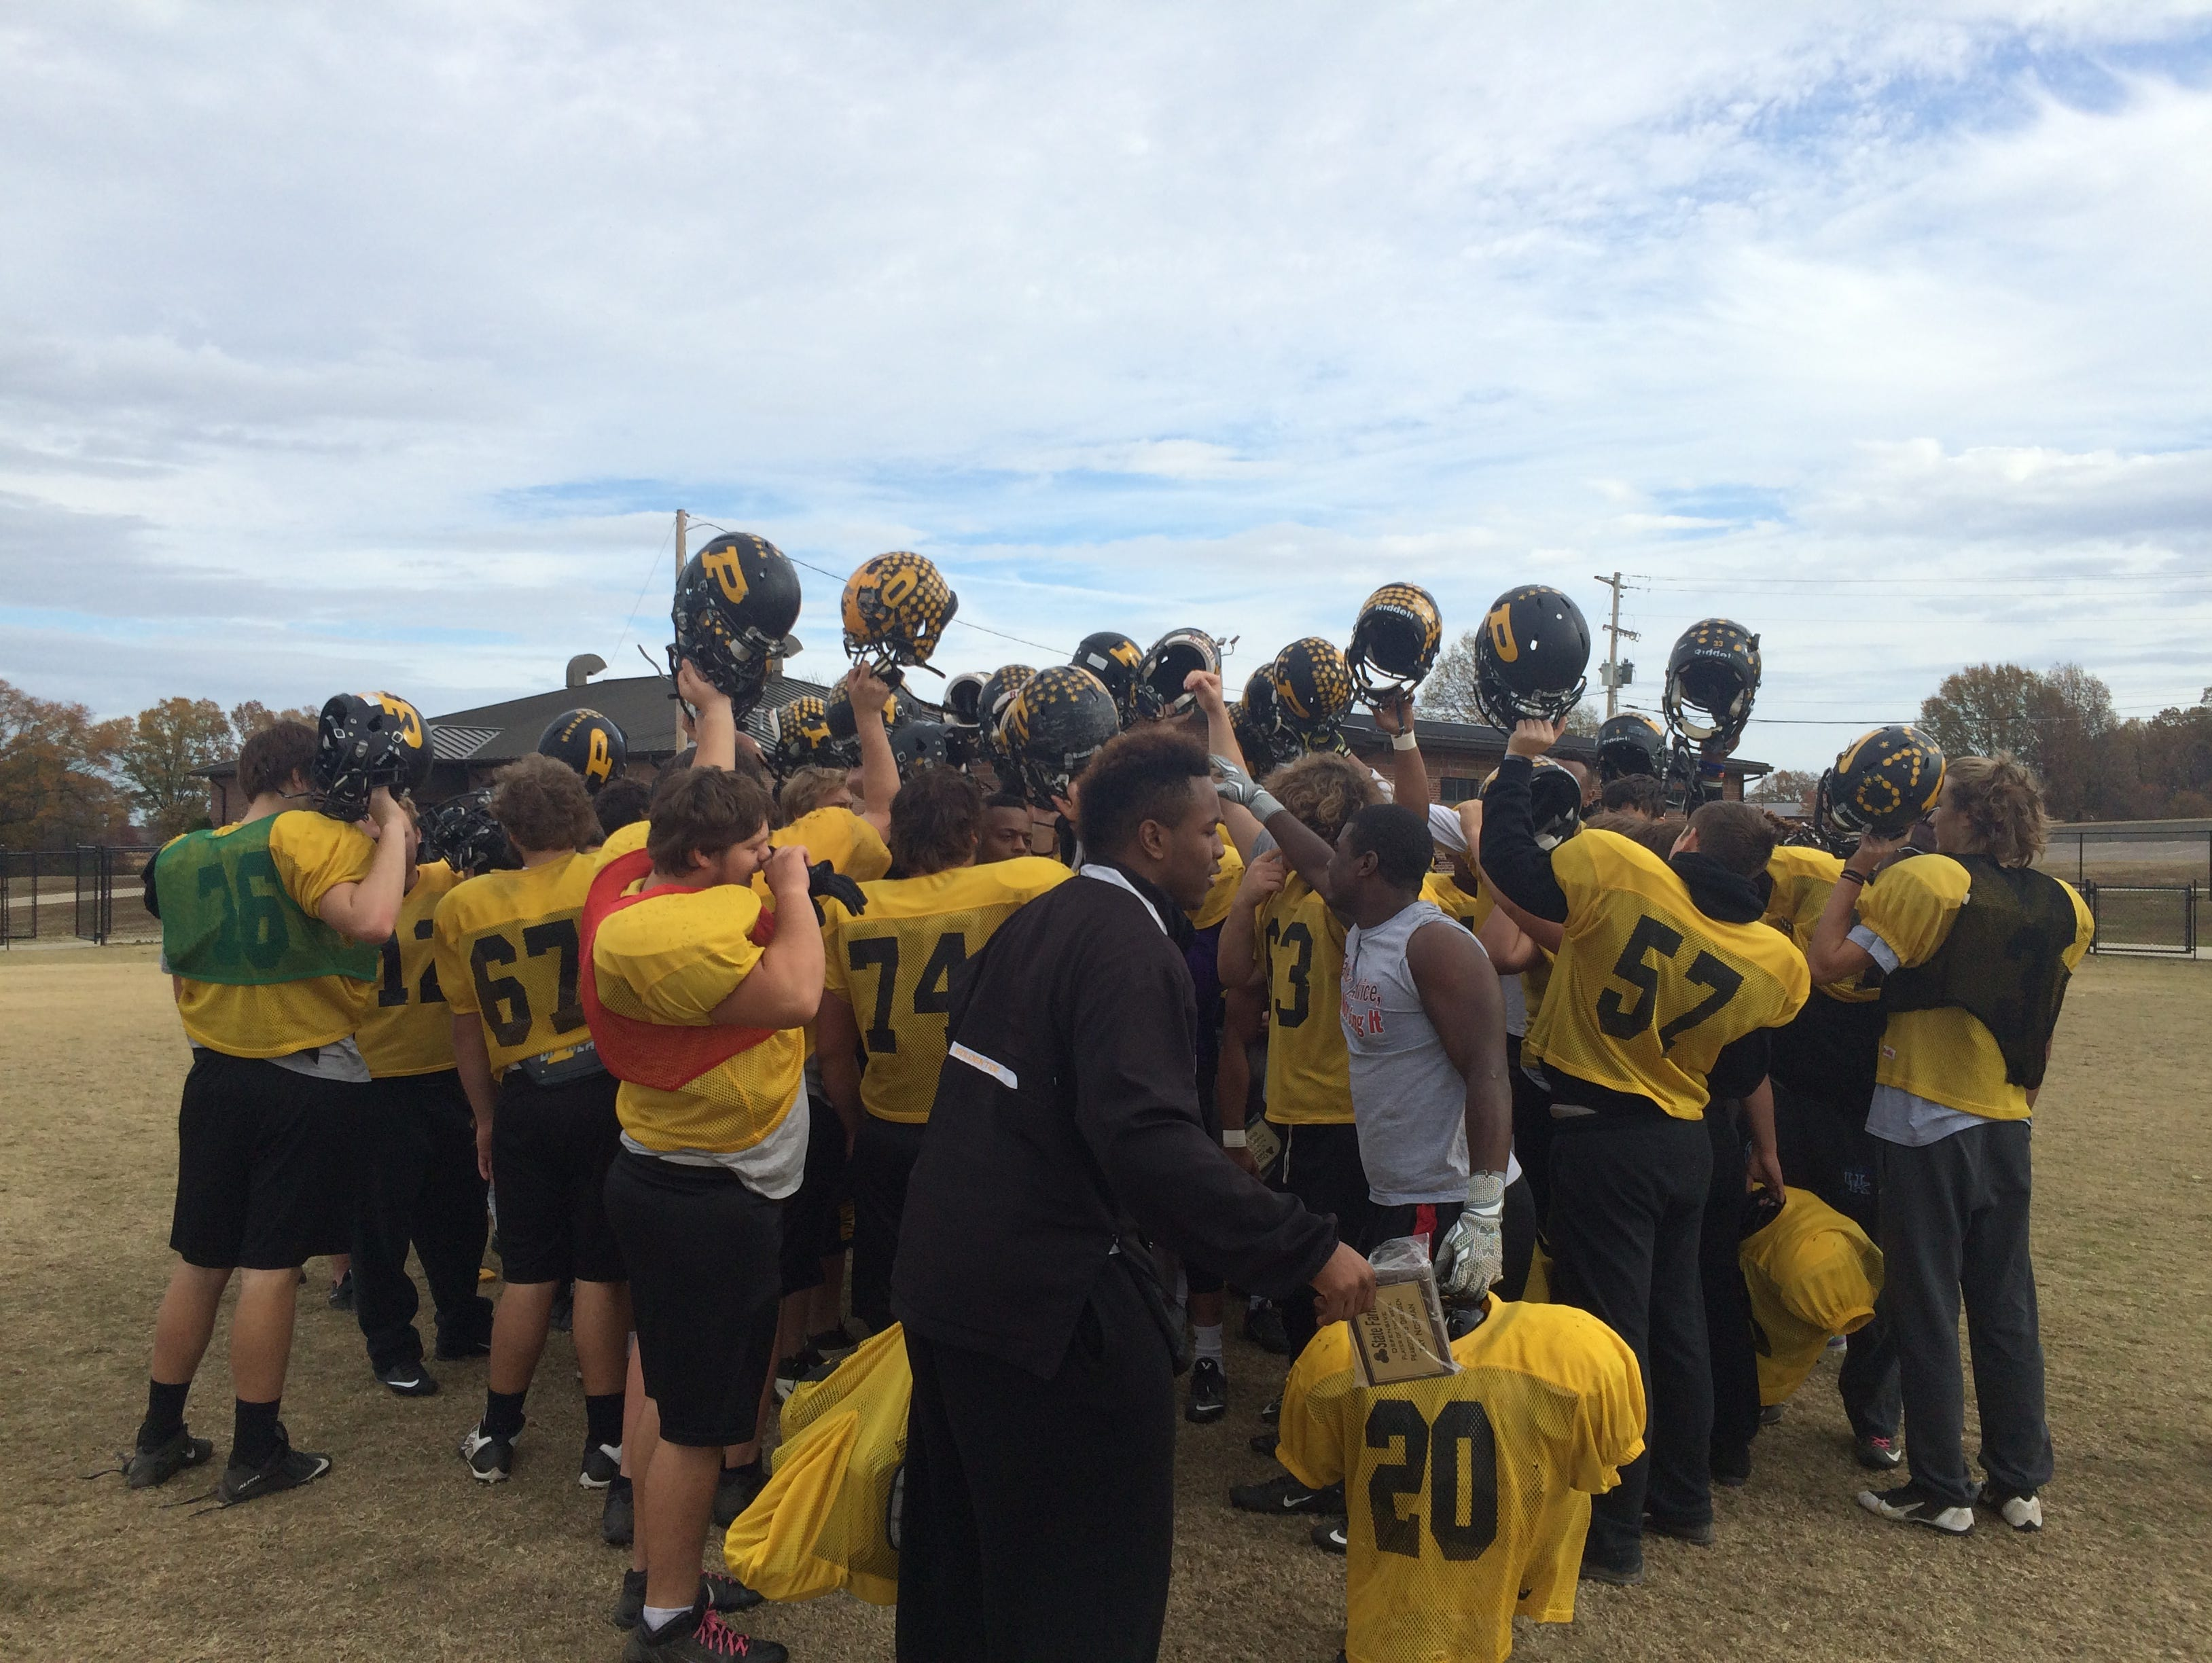 The players from Peabody huddle up at the end of practice Thursday morning.